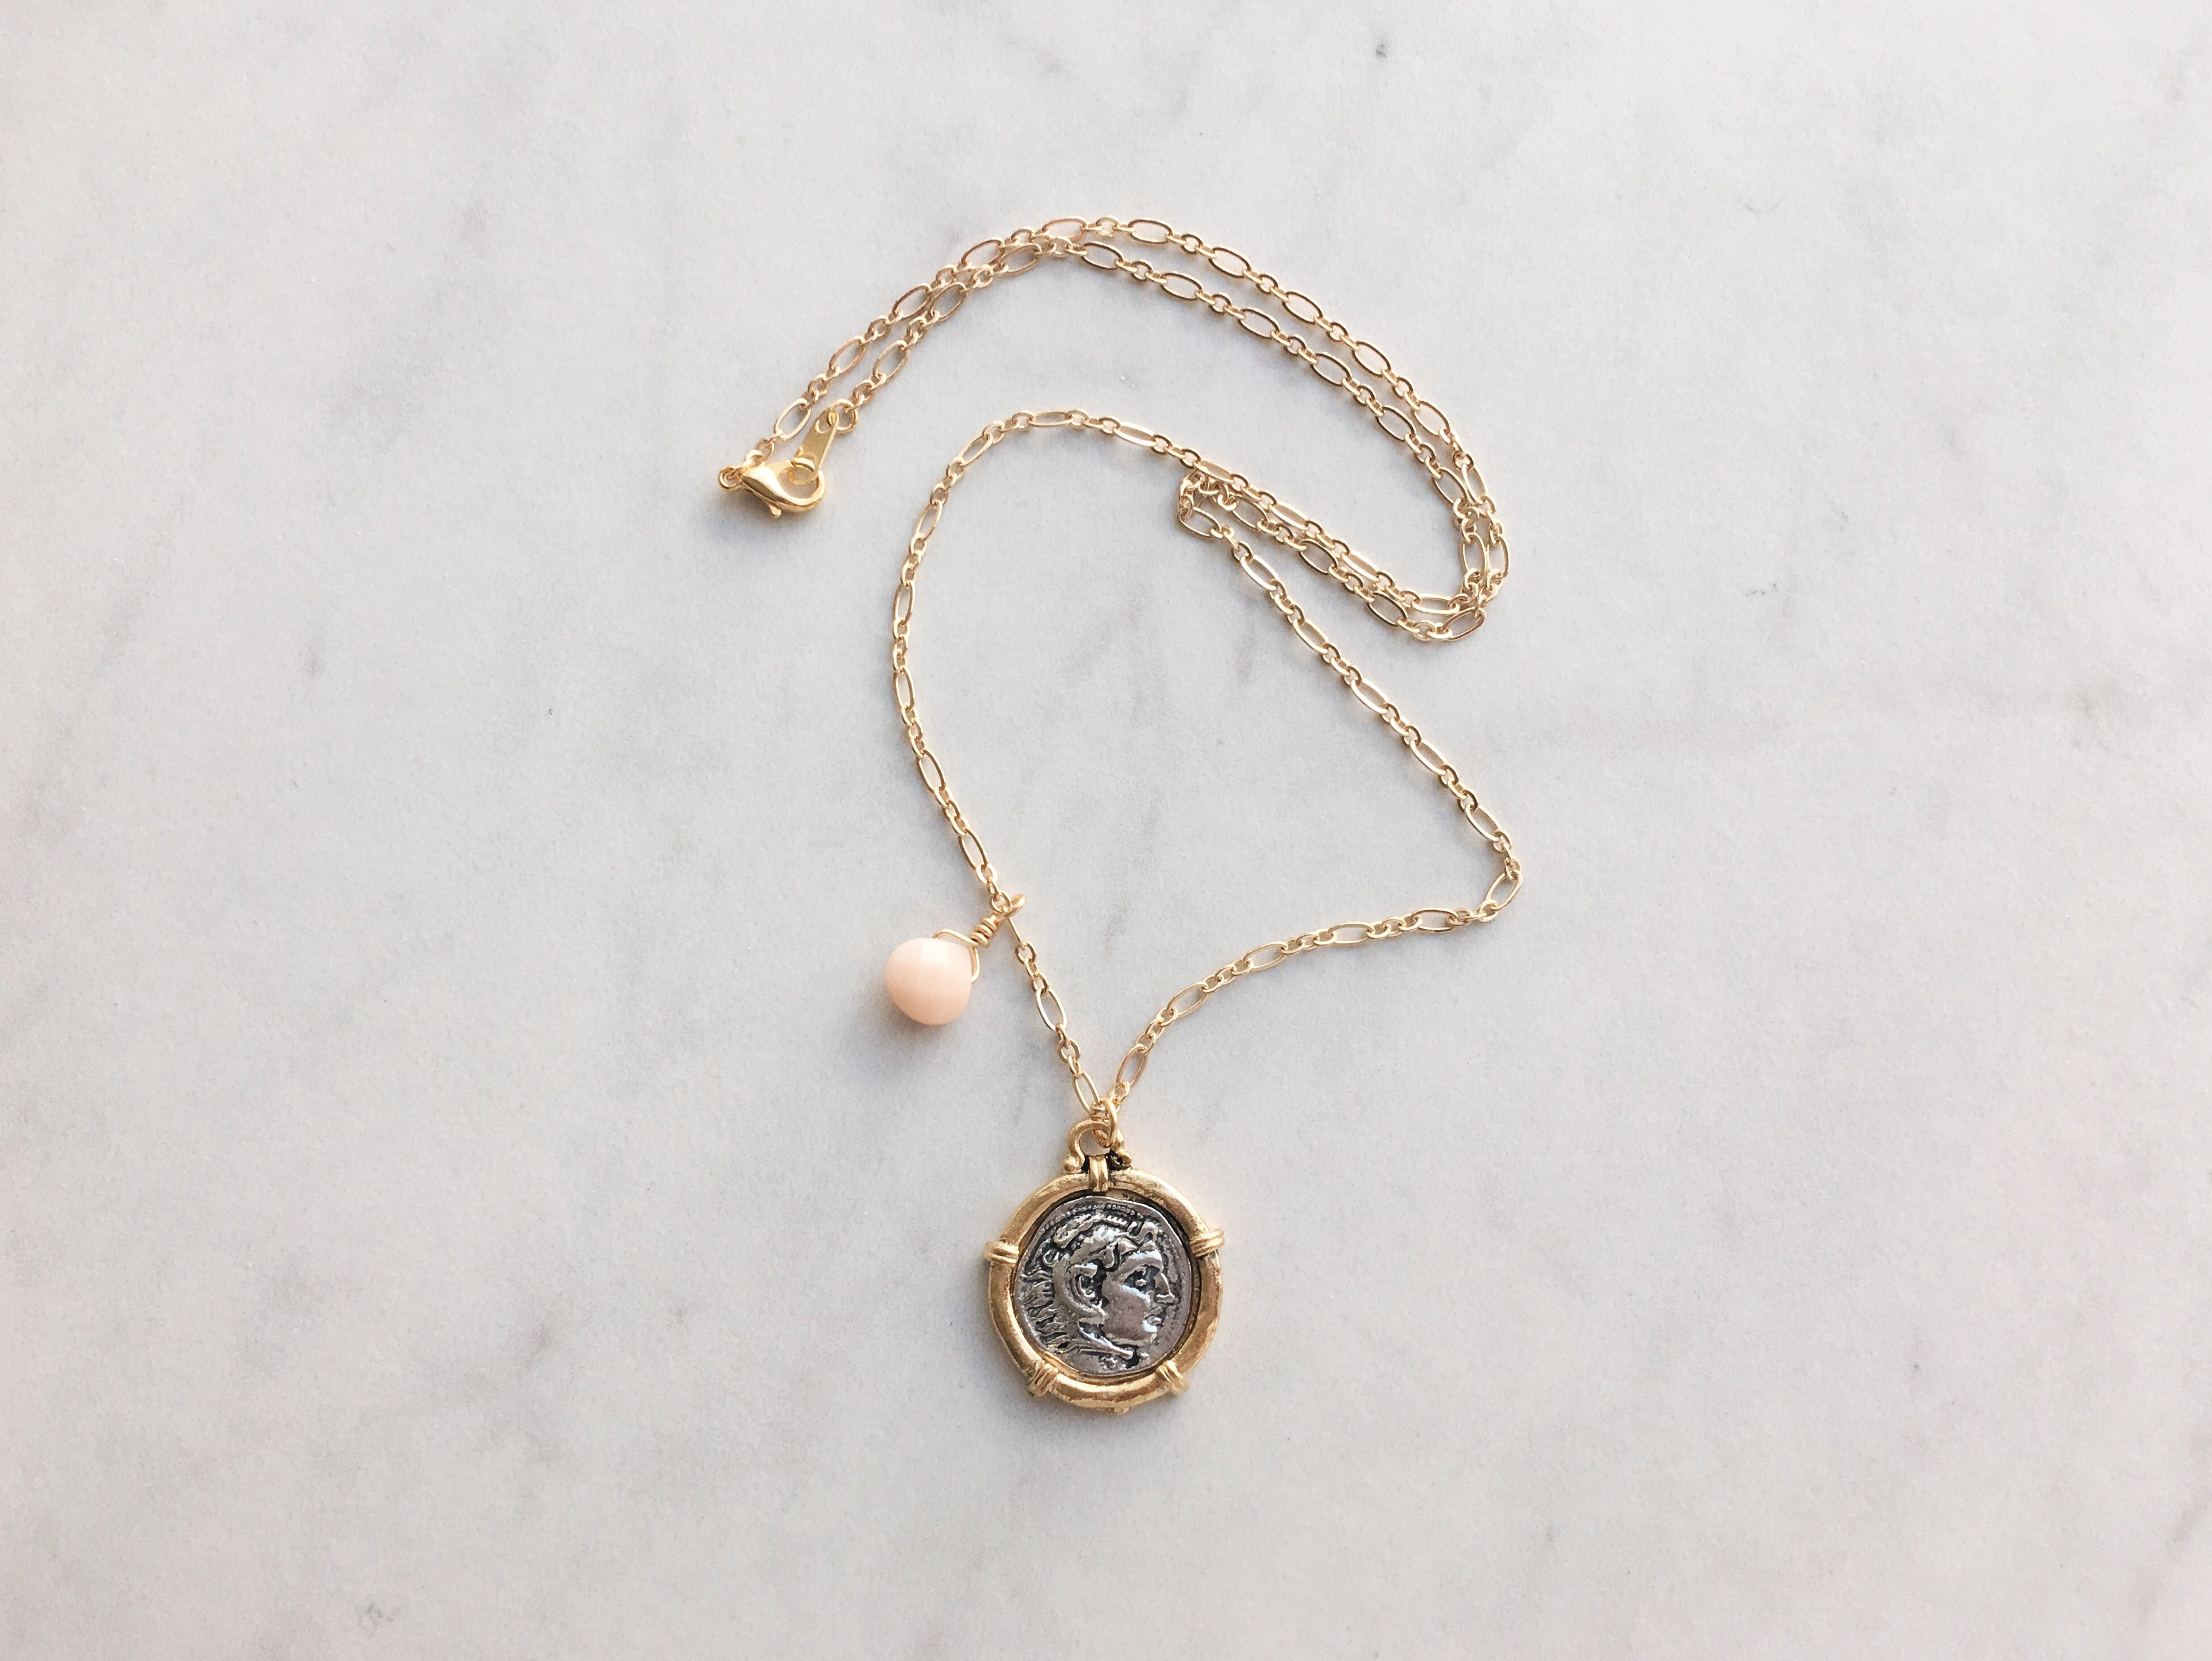 Apollo Coin Necklace